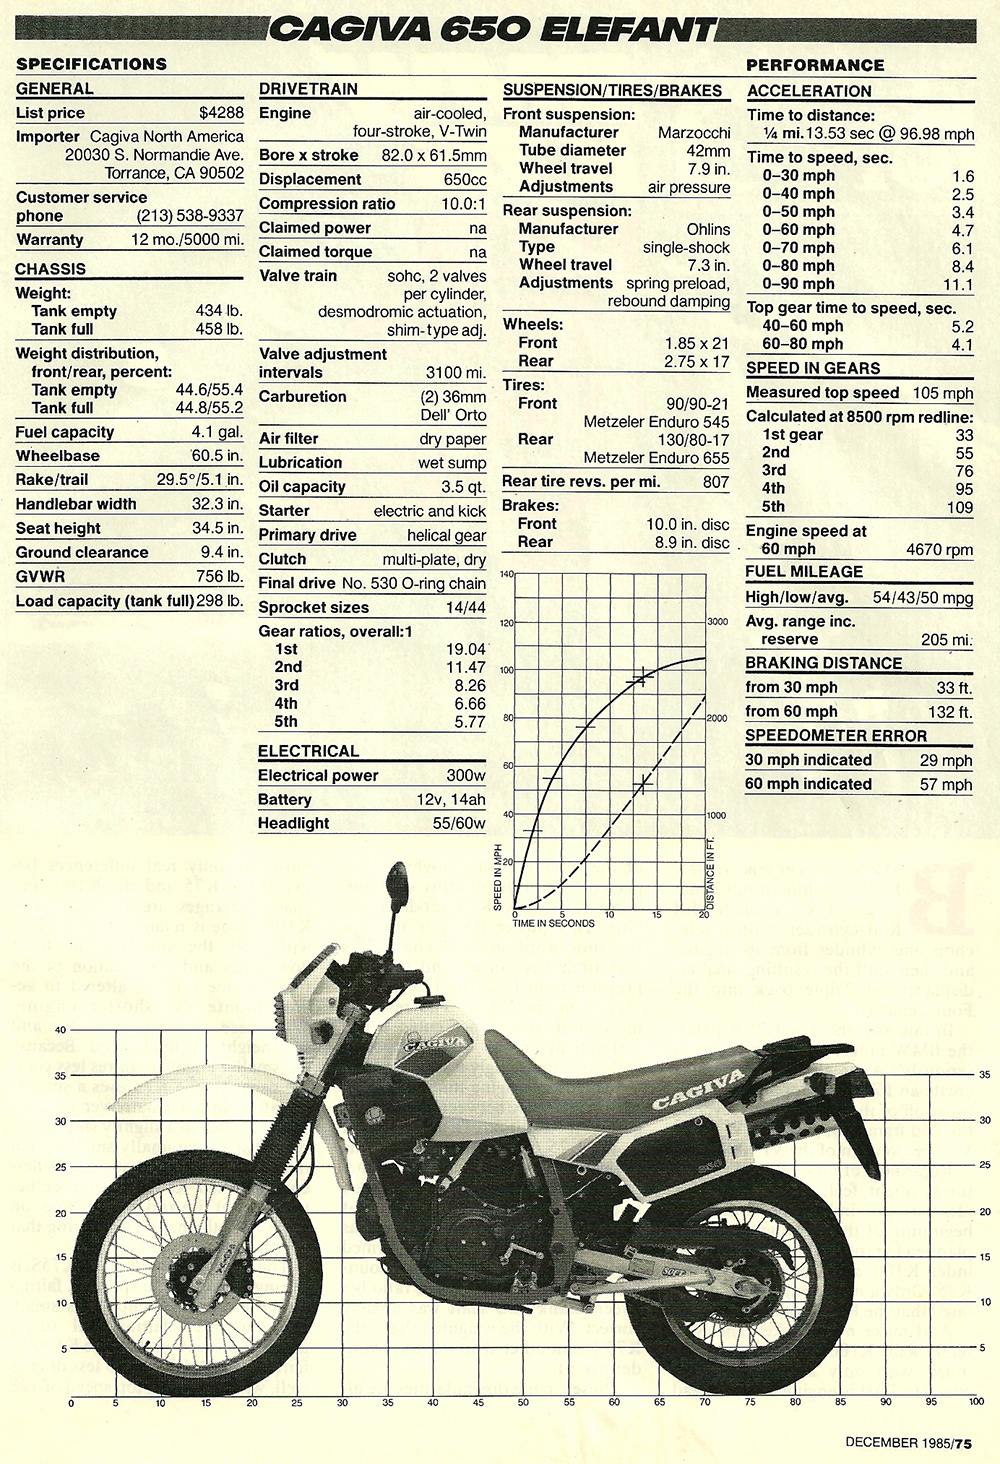 1985 Cagiva 650 Elefant road test 05.jpg